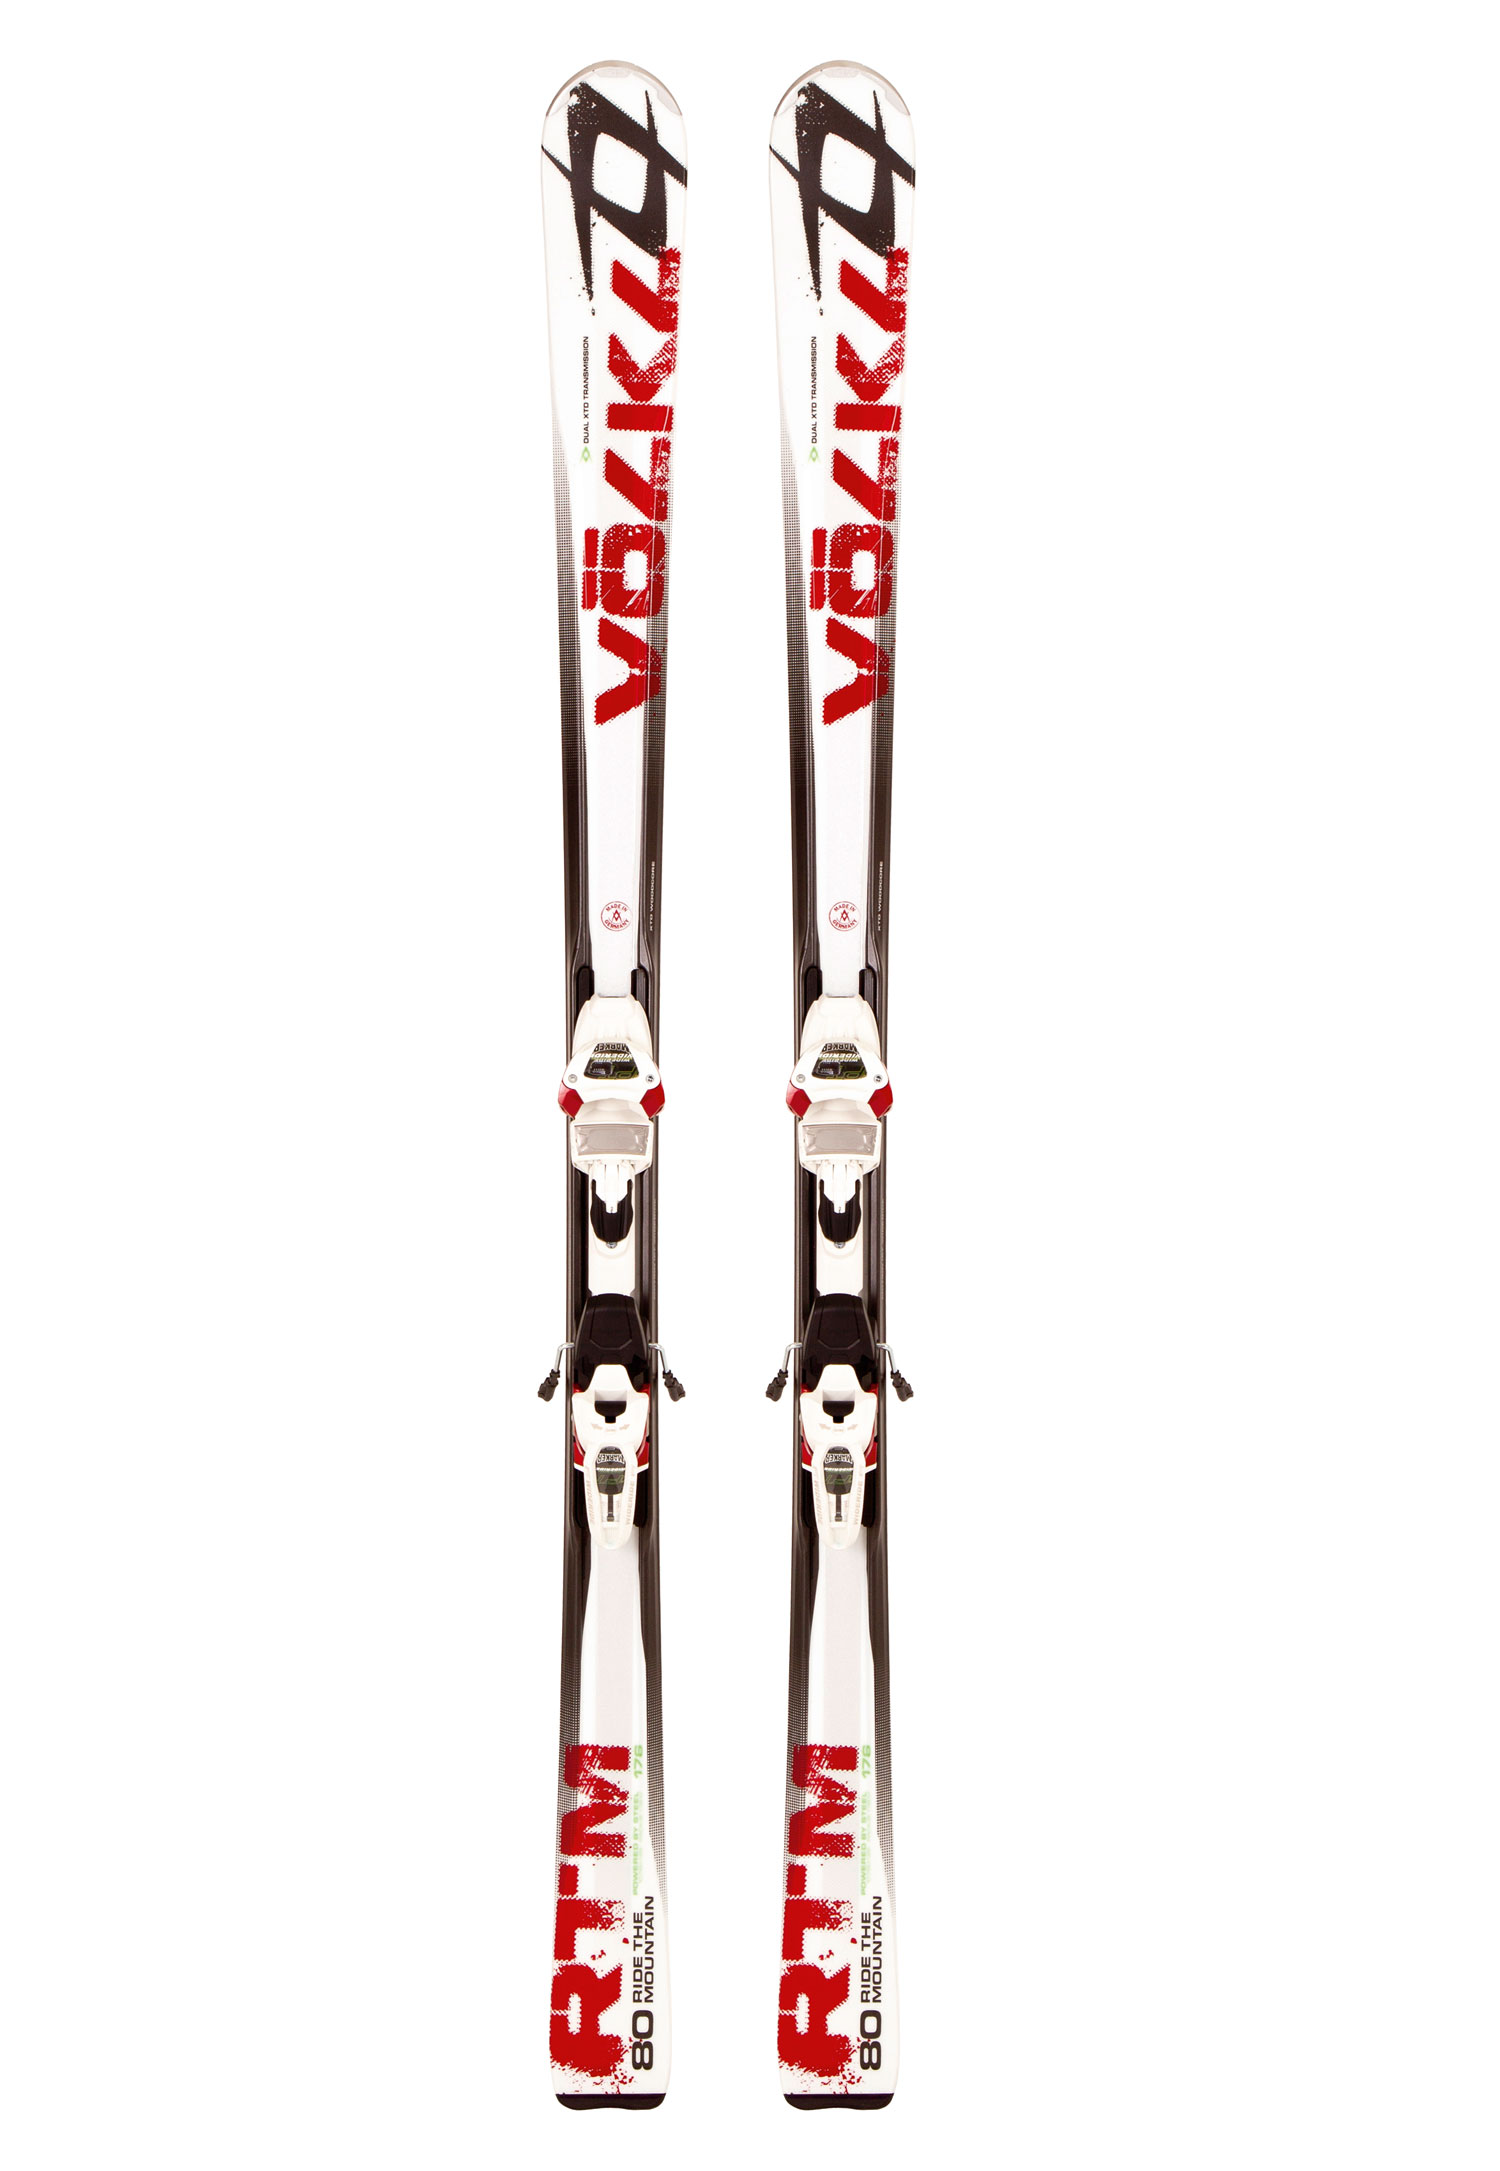 Ski Introducing a completely new series from Volkl called RTM. RTM standards for Ride The Mountain. With new models from top to bottom, the RTMs represent a complete re-focus from Volkl's engineering group on the skier who wants incredible groomed snow, frontside performance PLUS an occasional foray off trail. The flagships are the new RTM 84 and RTM 80 models, each with Motion iPT Wide Ride.Key Features of the Volkl RTM 80 Skis: Full Rocker: A smooth, gradual bend from tip to tail with matching side and flex. Extended Low Profile (ELP) gives the skier all the benefits of added maneuverability in soft snow while also delivering smooth, graceful arcs on groomed terrain. How? By matching the flex and sidecut with the full rocker (long, gradual bend from tip to tail) profile, the skier gains full, uninterrupted edge contact. The more you put the ski on edge, the more effective the edge becomes. The resulting smoothness and predictability is truly uncanny. Extended Wood core Dual XTD Sidewall Powered by Titanium Radius: 15.8 (166), 16.9 (171), 18.1 (176), 19.1 (181) Key Features of the Volkl iPT Wide Ride 12.0 D Bindings: DIN/ ISO 4-12 Triple Pivot Elite Toe Inter Pivot Heel - $638.95